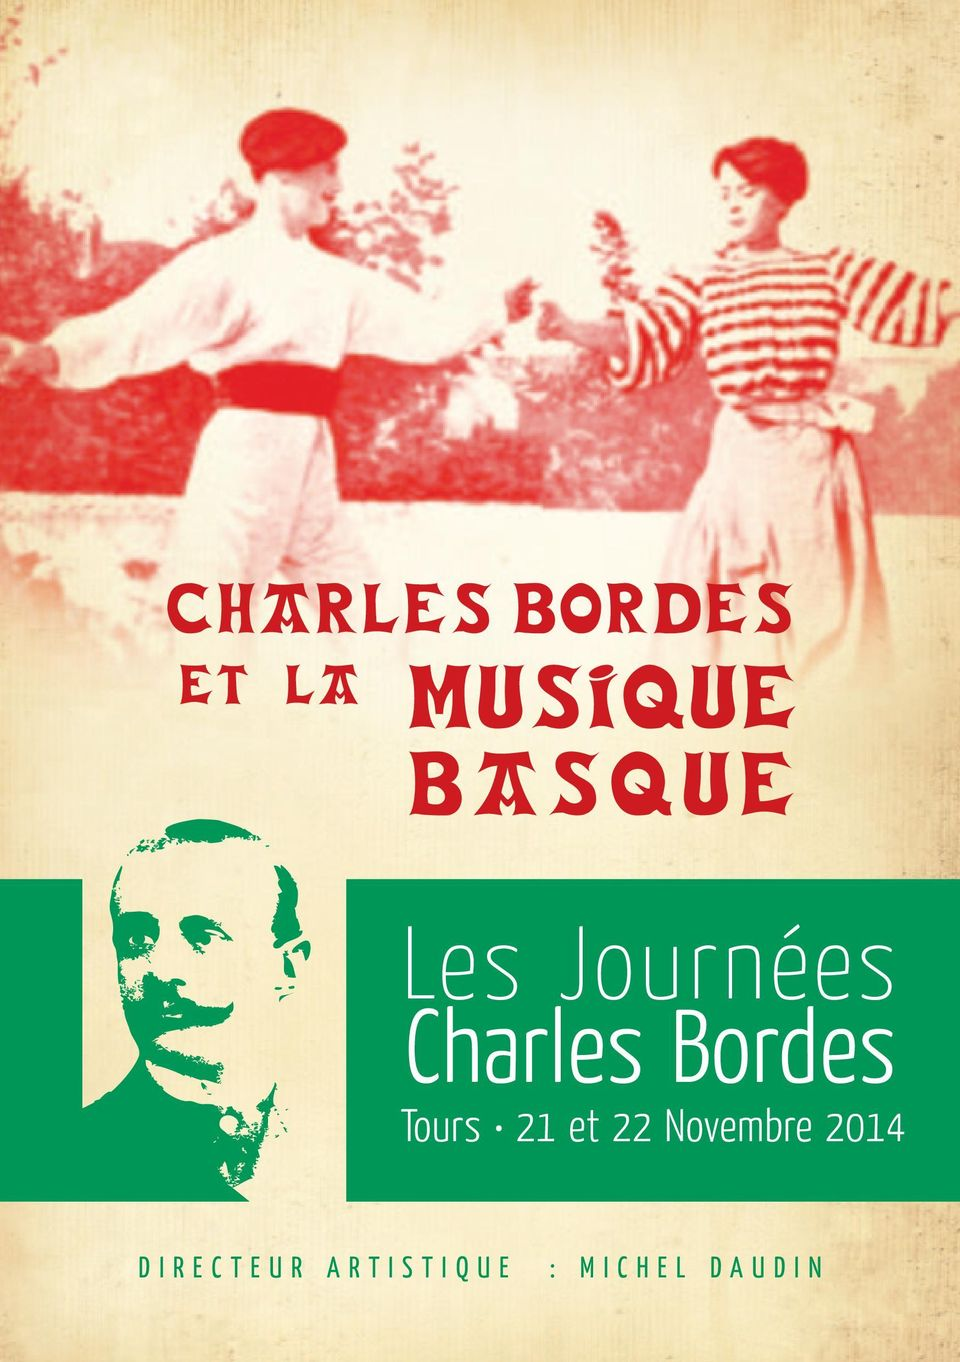 Bordes Tours 21 et 22 Novembre